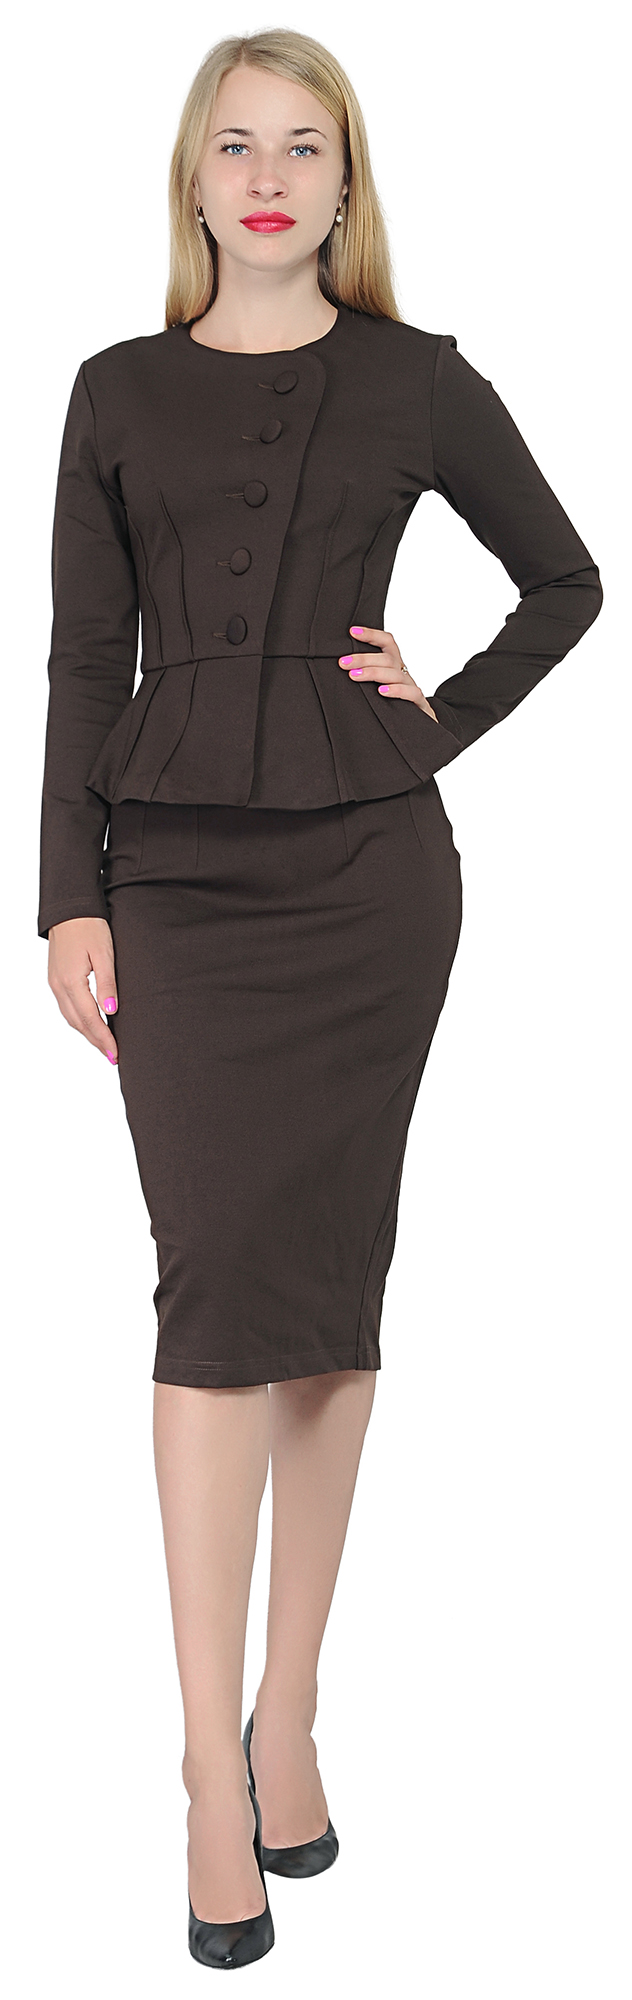 0f5f0f47a MARYCRAFTS WOMEN'S FORMAL OFFICE BUSINESS WORK SUIT SHIRT JACKET ...